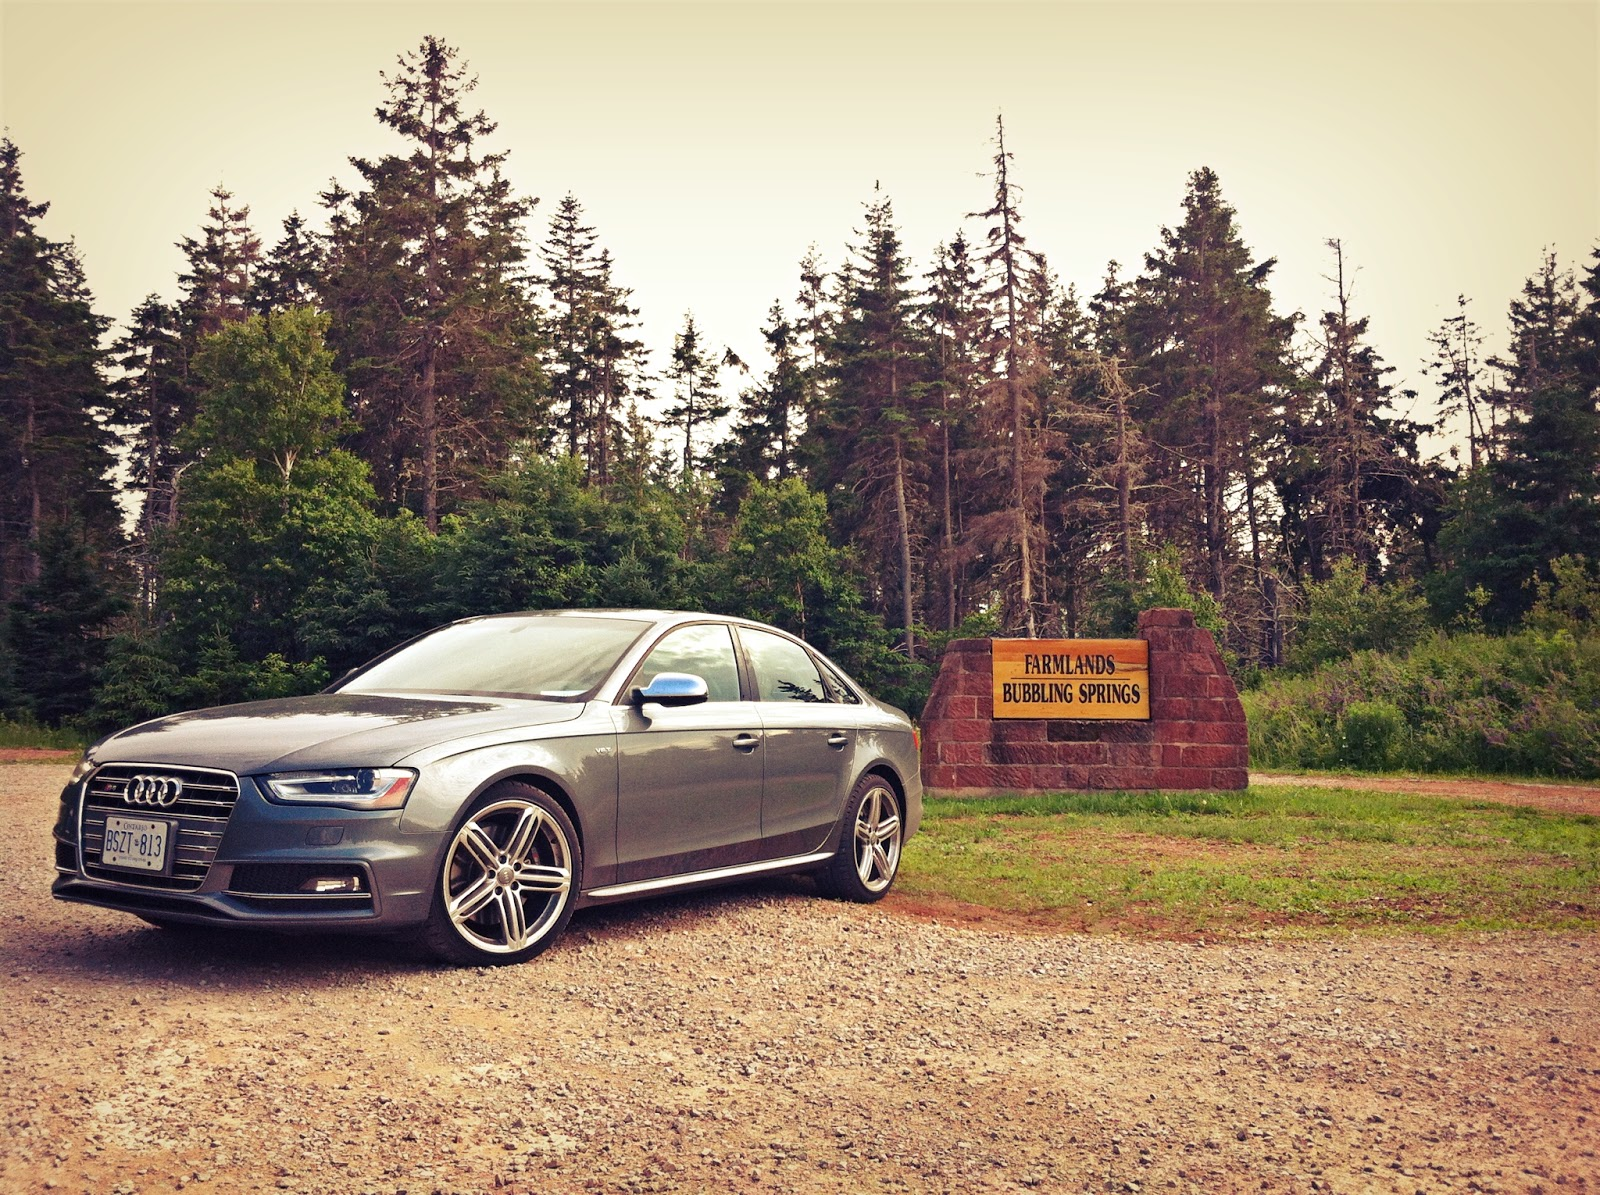 2014 Audi S4 Brackley Trails